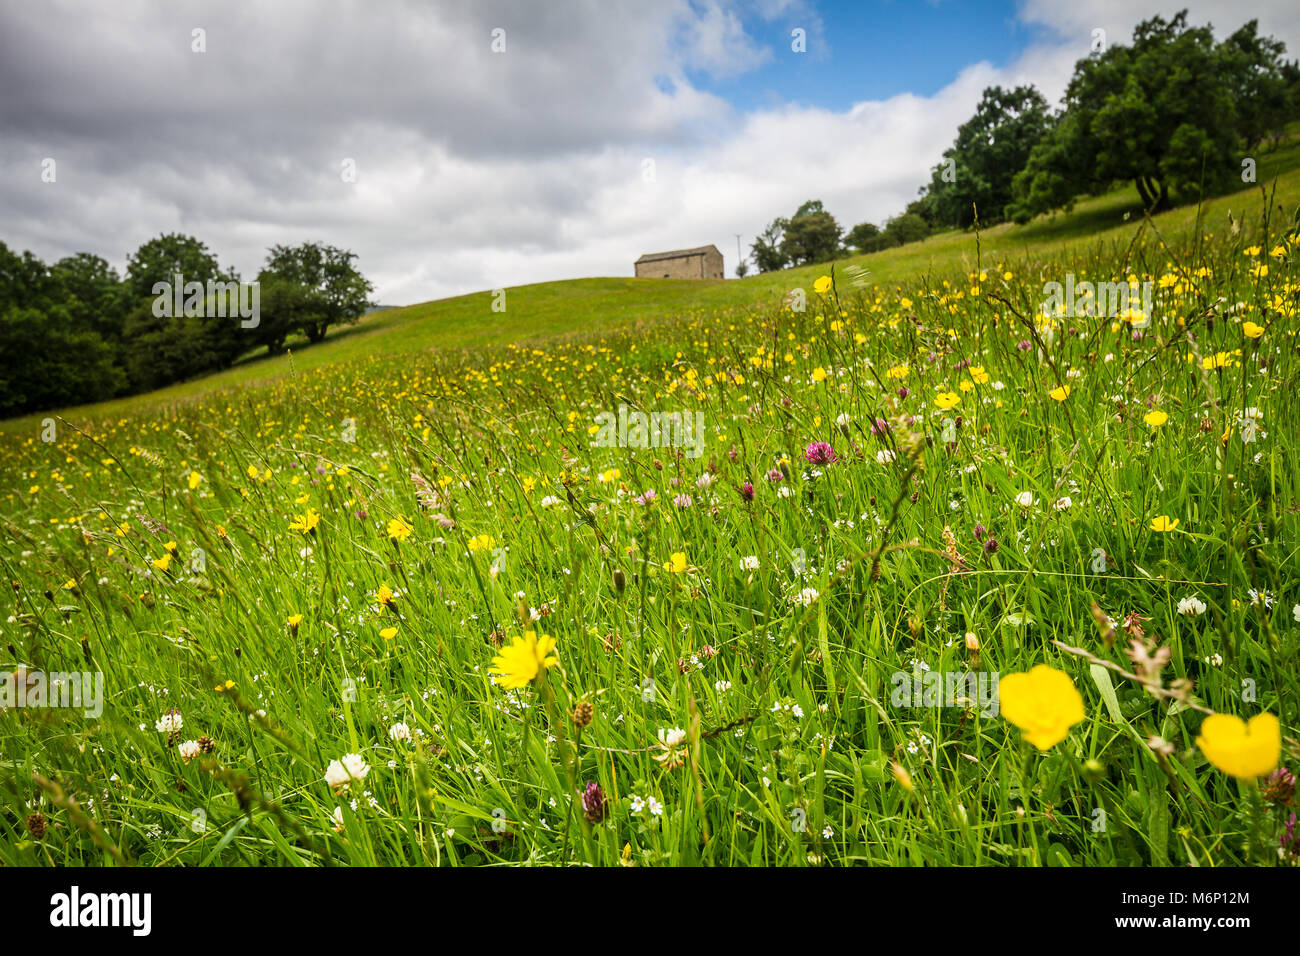 Summer meadow in full bloom in the midst of Wharfdale - Stock Image